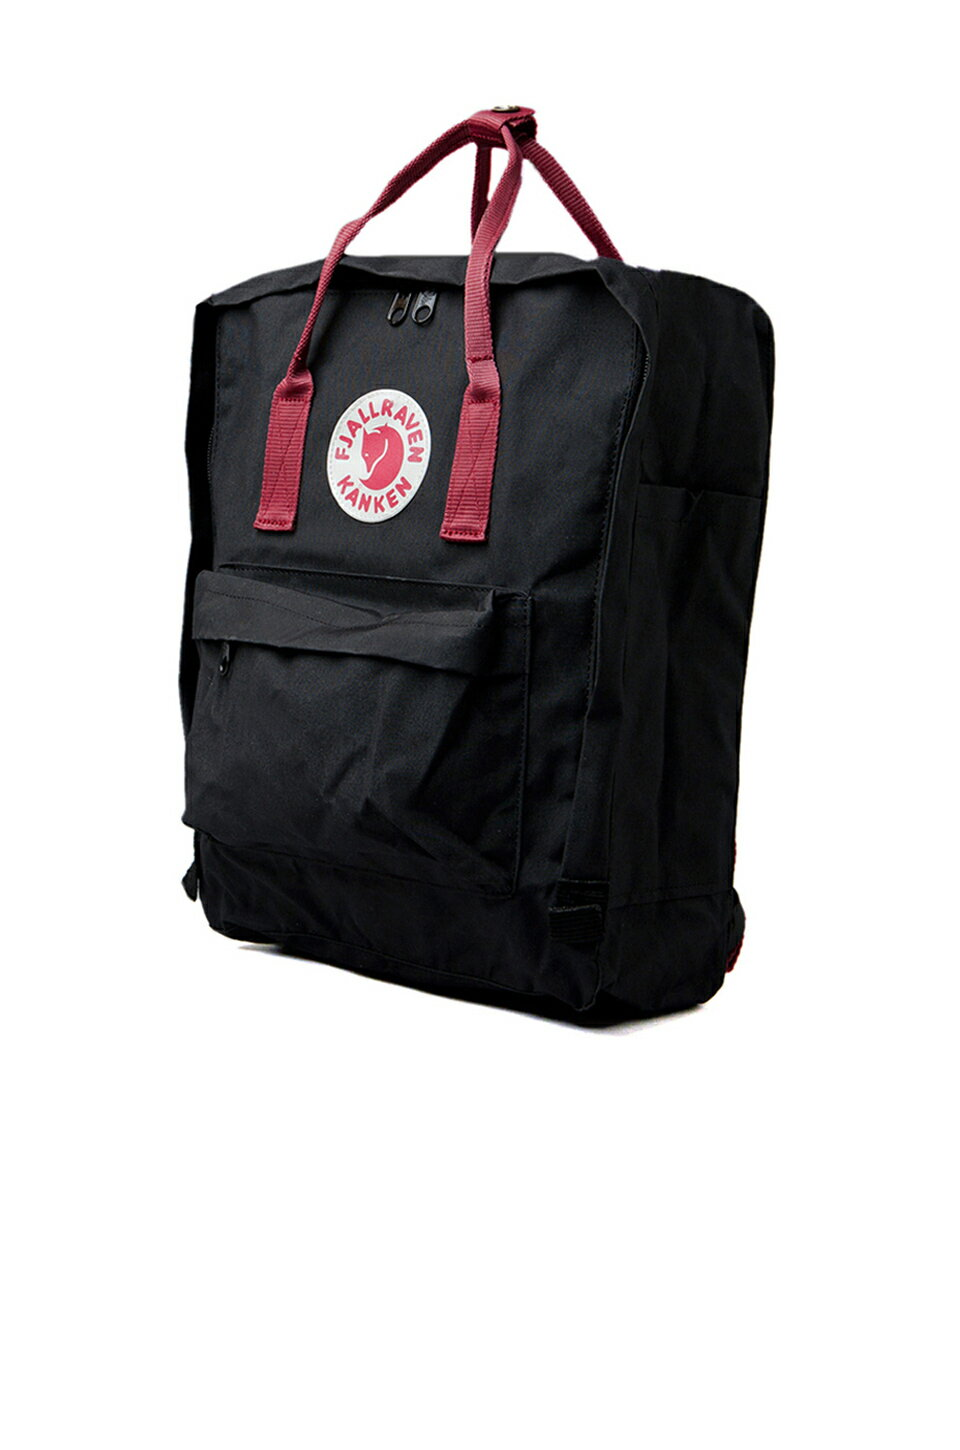 【Fjallraven Kanken 】K?nken Classic 550-326 Black & Ox Red 黑公牛紅 1